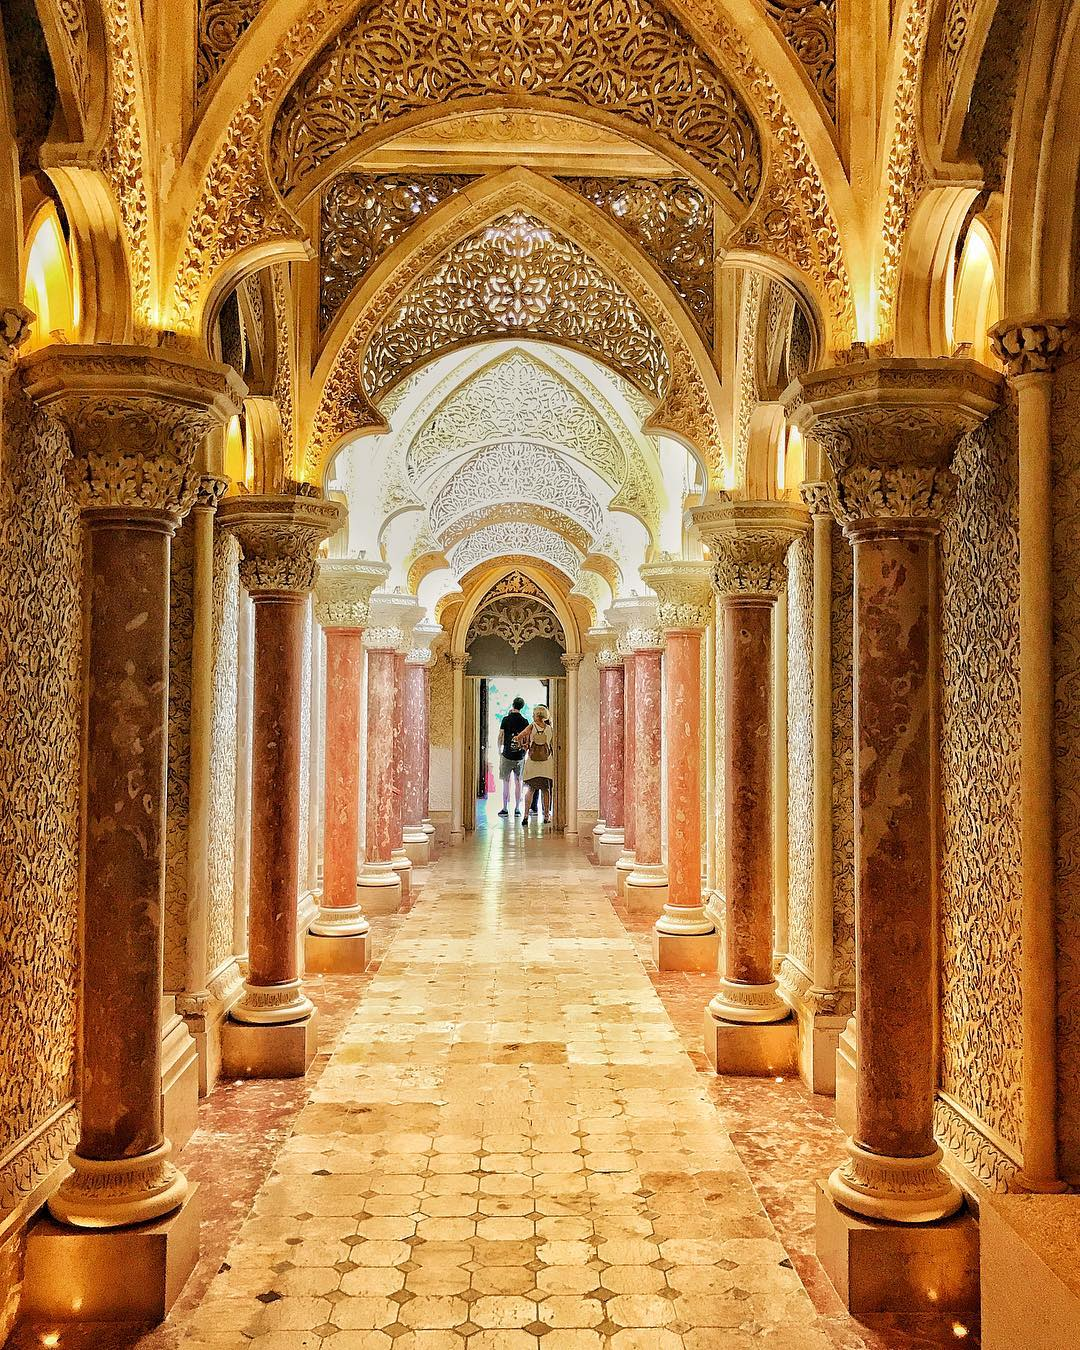 Monserrate Palace in Sintra is a beautiful work of arthellip